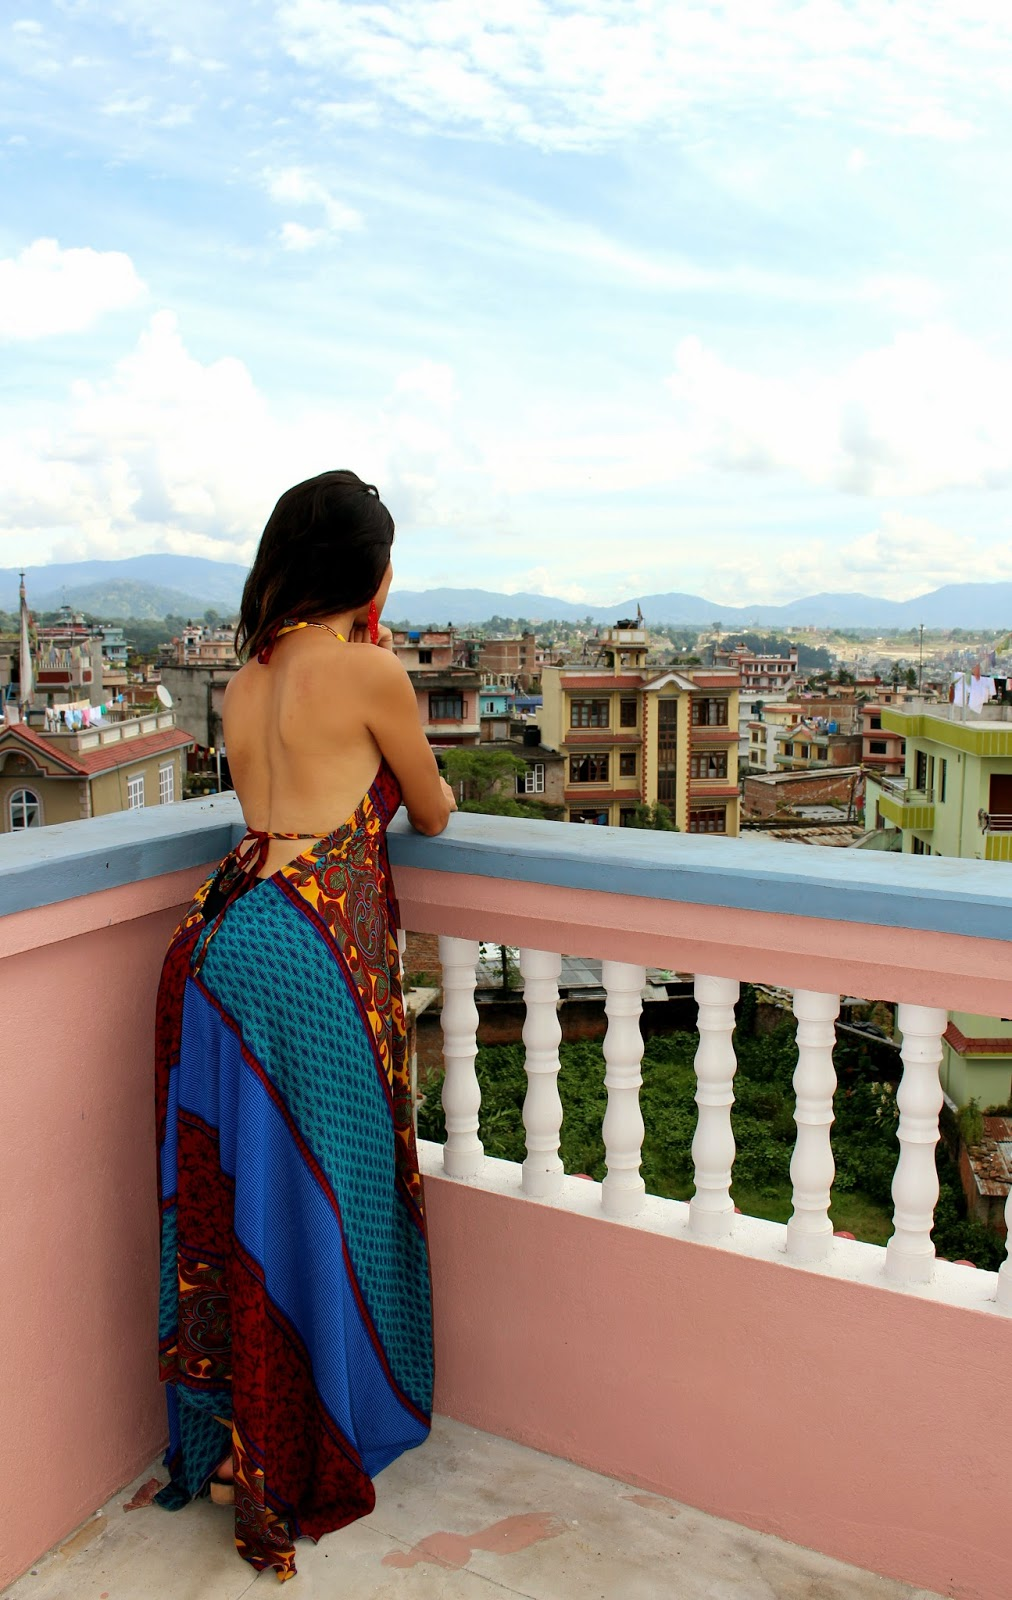 Lotus Sky jewelry model, Nepal rooftop